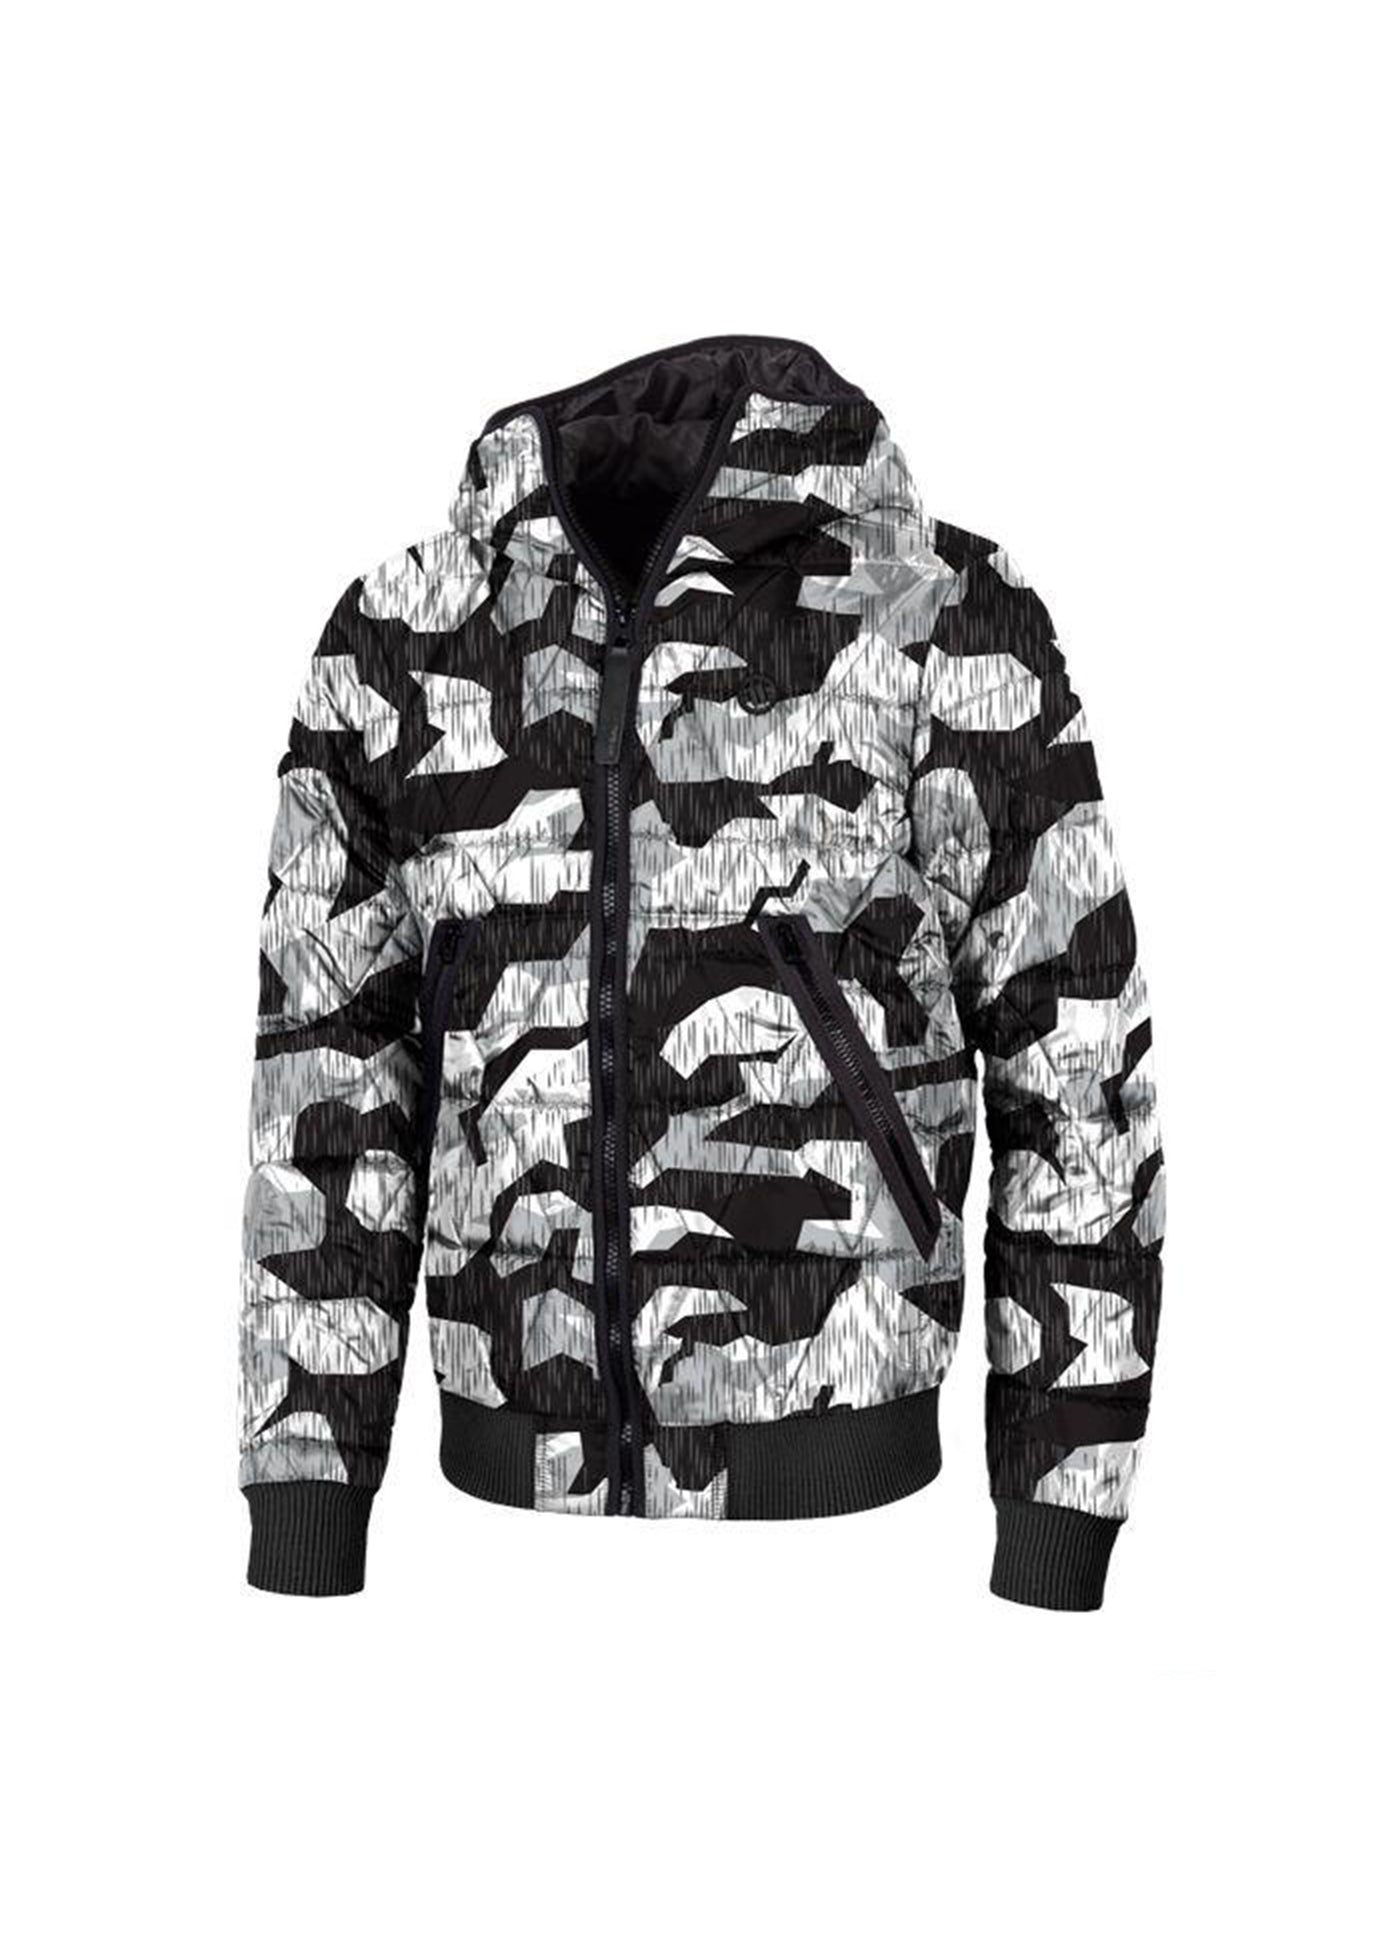 Winter Jacket Buttler B/W Camo from Pitbull West Coast strore UK